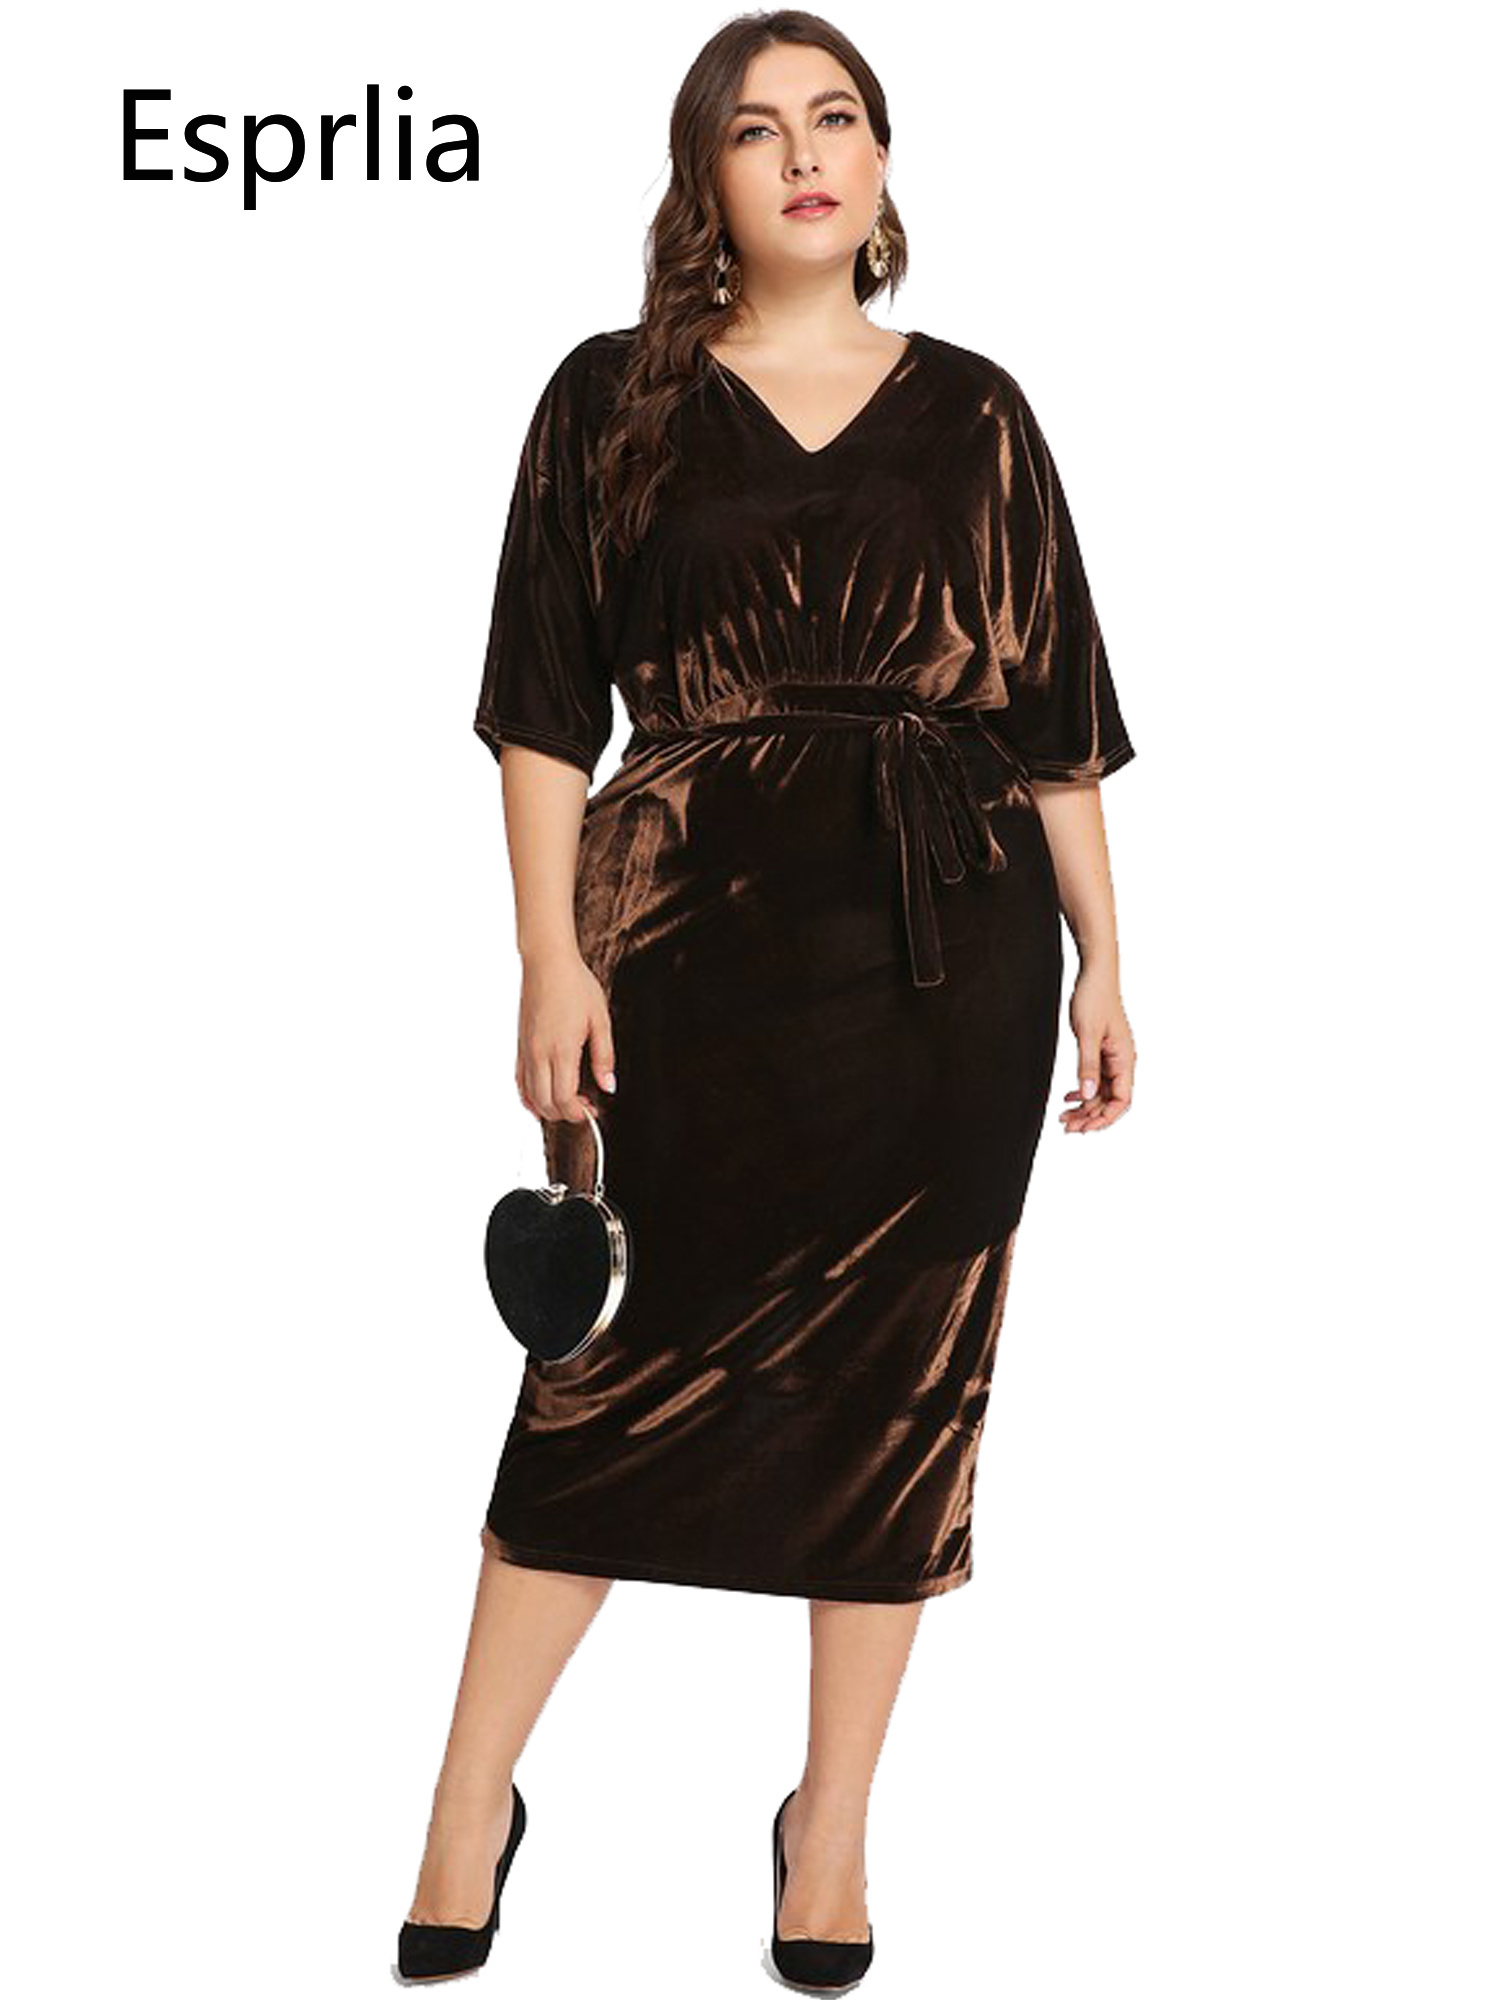 6f4c773e94171 ESPRLIA Women's Plus Size High Waist Velvet Sexy Faux Wrap Pencil Cocktail  Midi Dresses With Belts 3XL 4XL 5XL